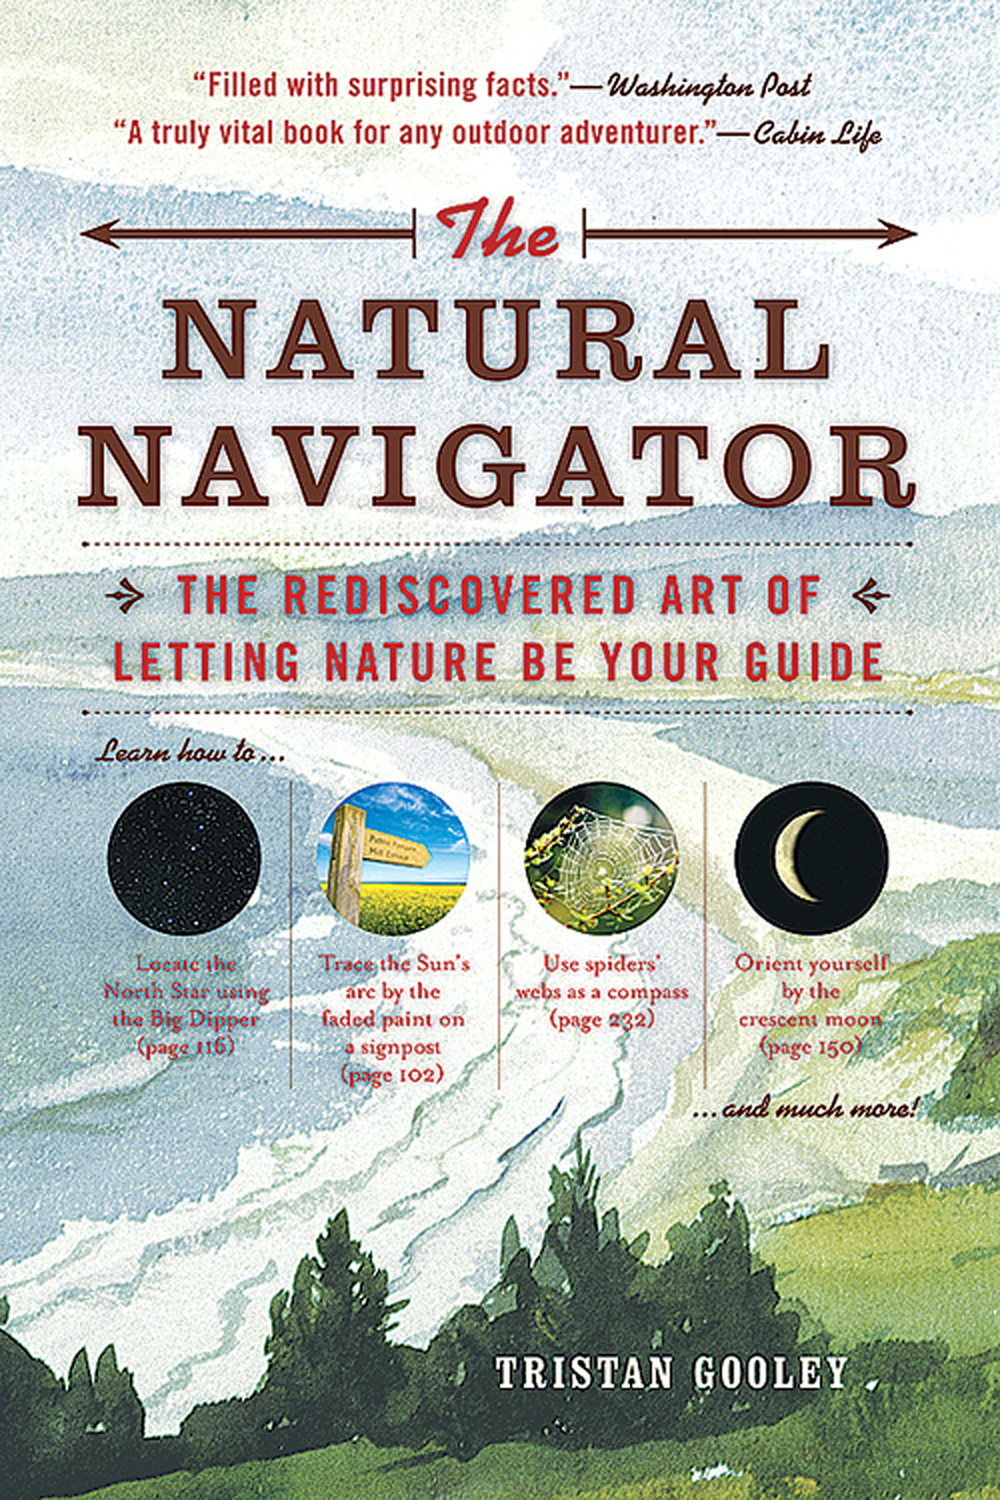 Natural Navigator (The): The Rediscovered Art of Letting Nature Be Your Guide